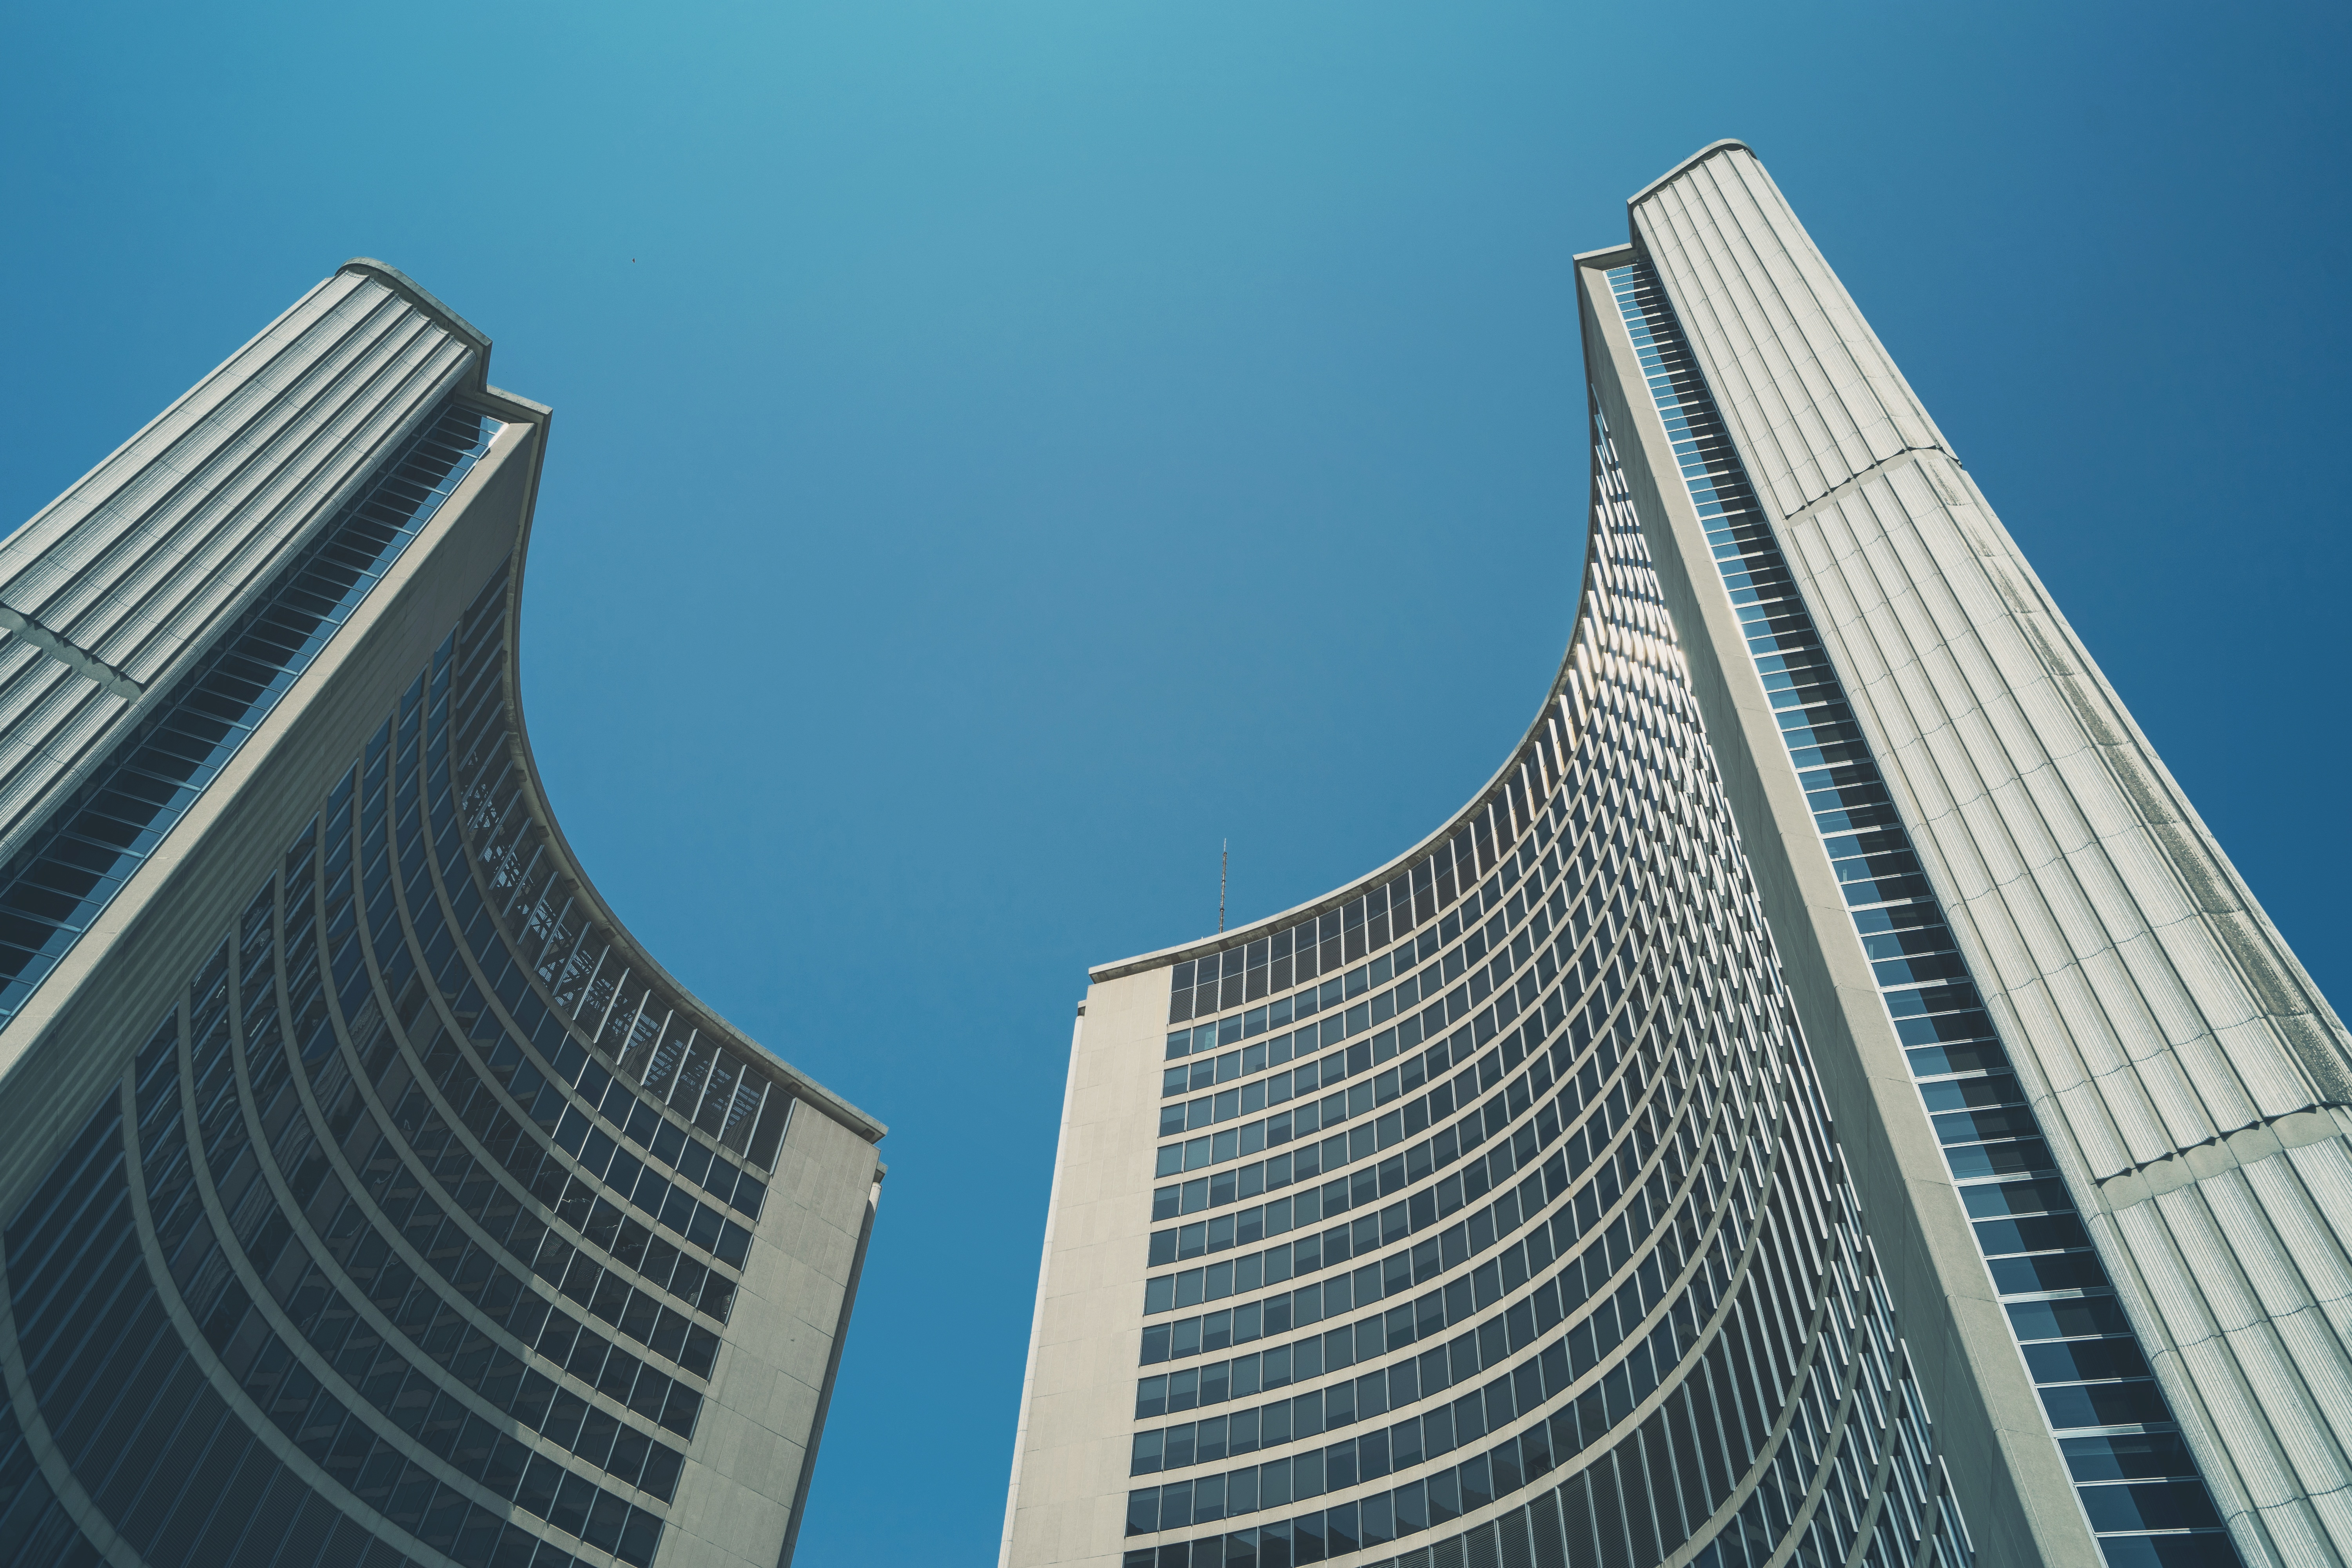 Building Photography high rise buildings on low angle photography · free stock photo